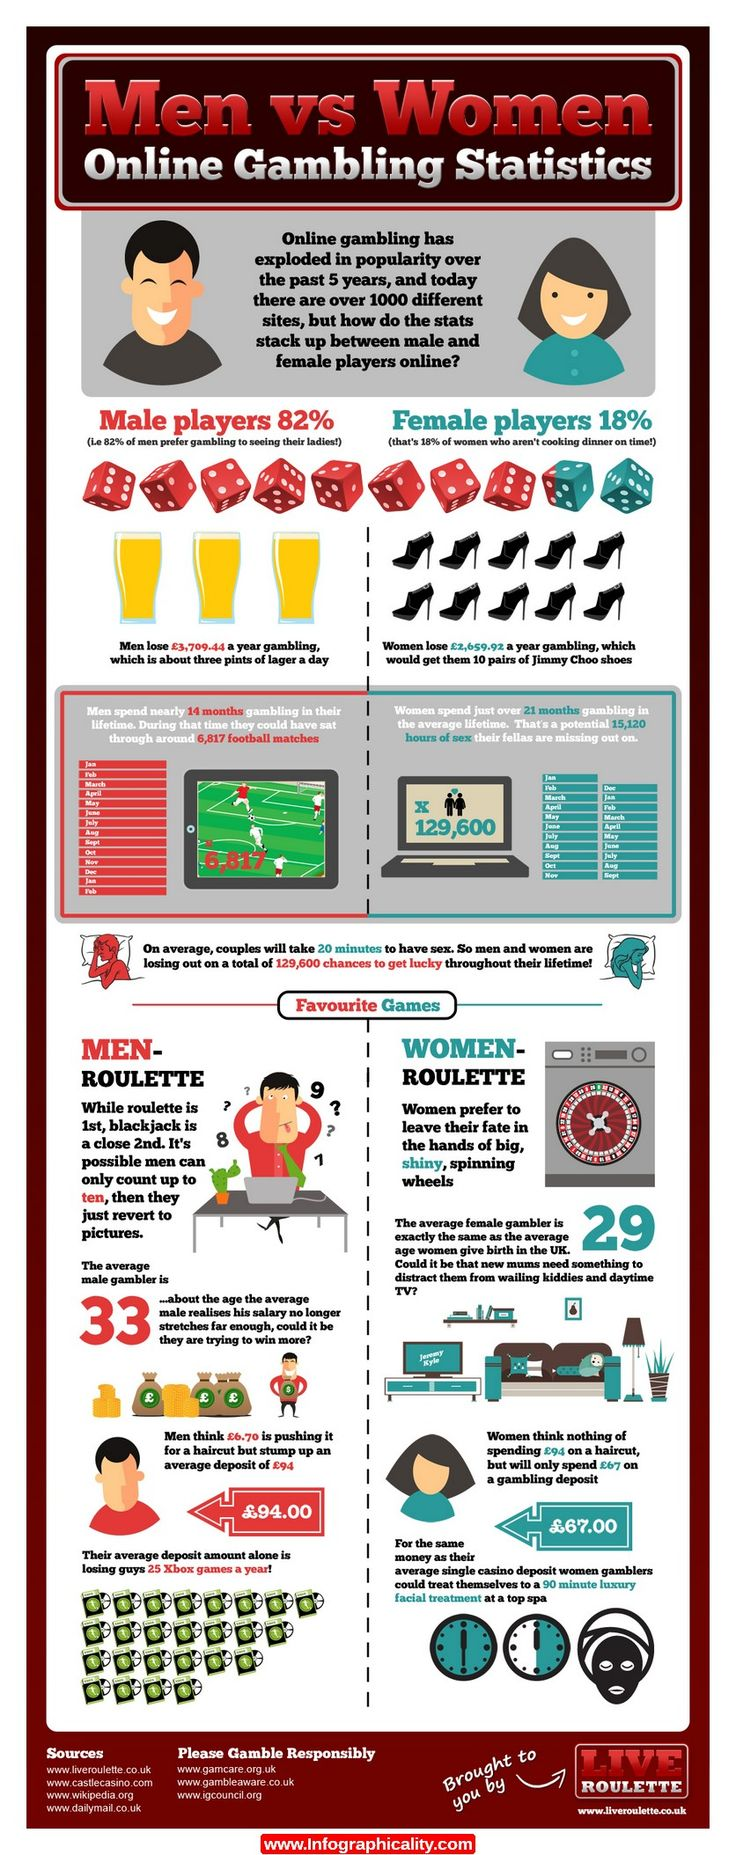 Men Vs Women Online Gambling Statistics Infographic - http://infographicality.com/men-vs-women-online-gambling-statistics-infographic/